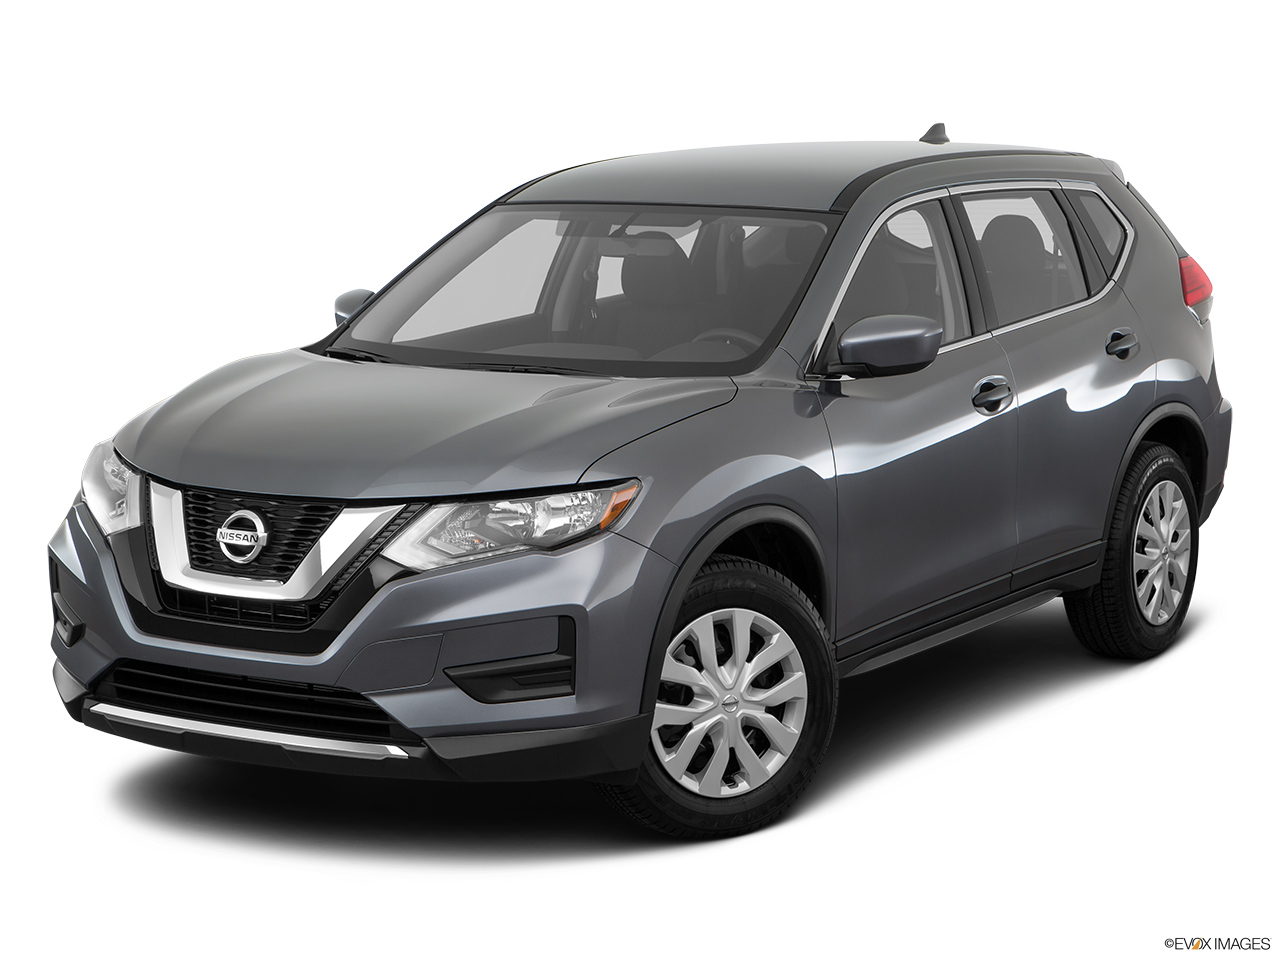 nissan x trail 2017 2 5 s 4wd 7 seater in saudi arabia new car prices specs reviews photos. Black Bedroom Furniture Sets. Home Design Ideas